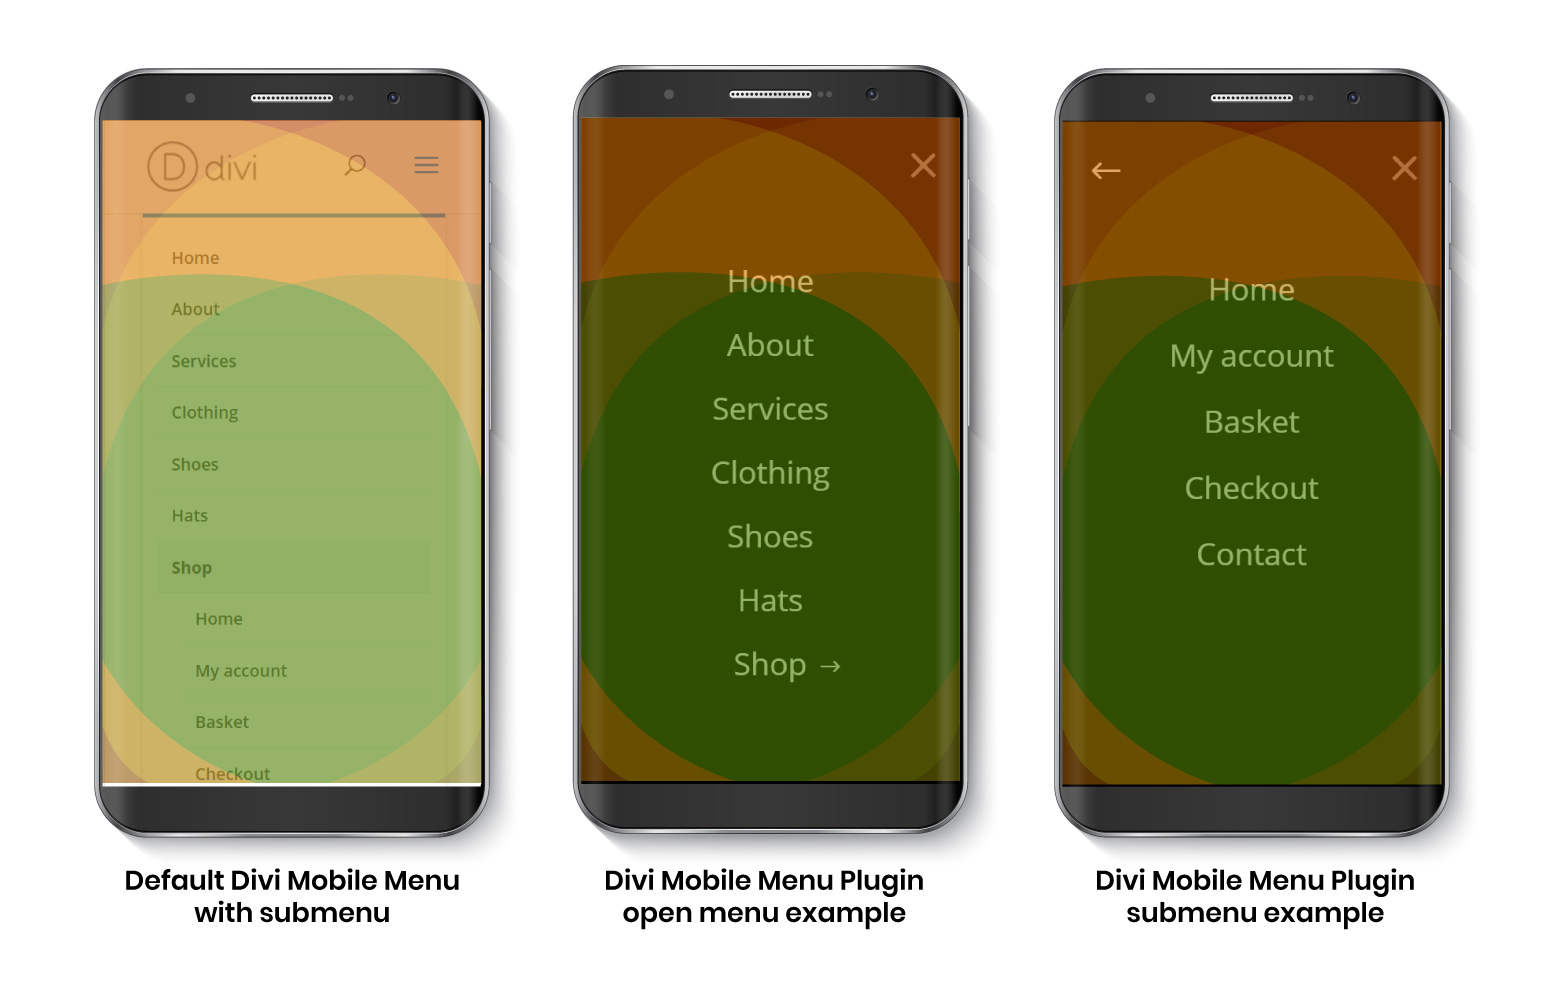 Default Divi Mobile and Improved one